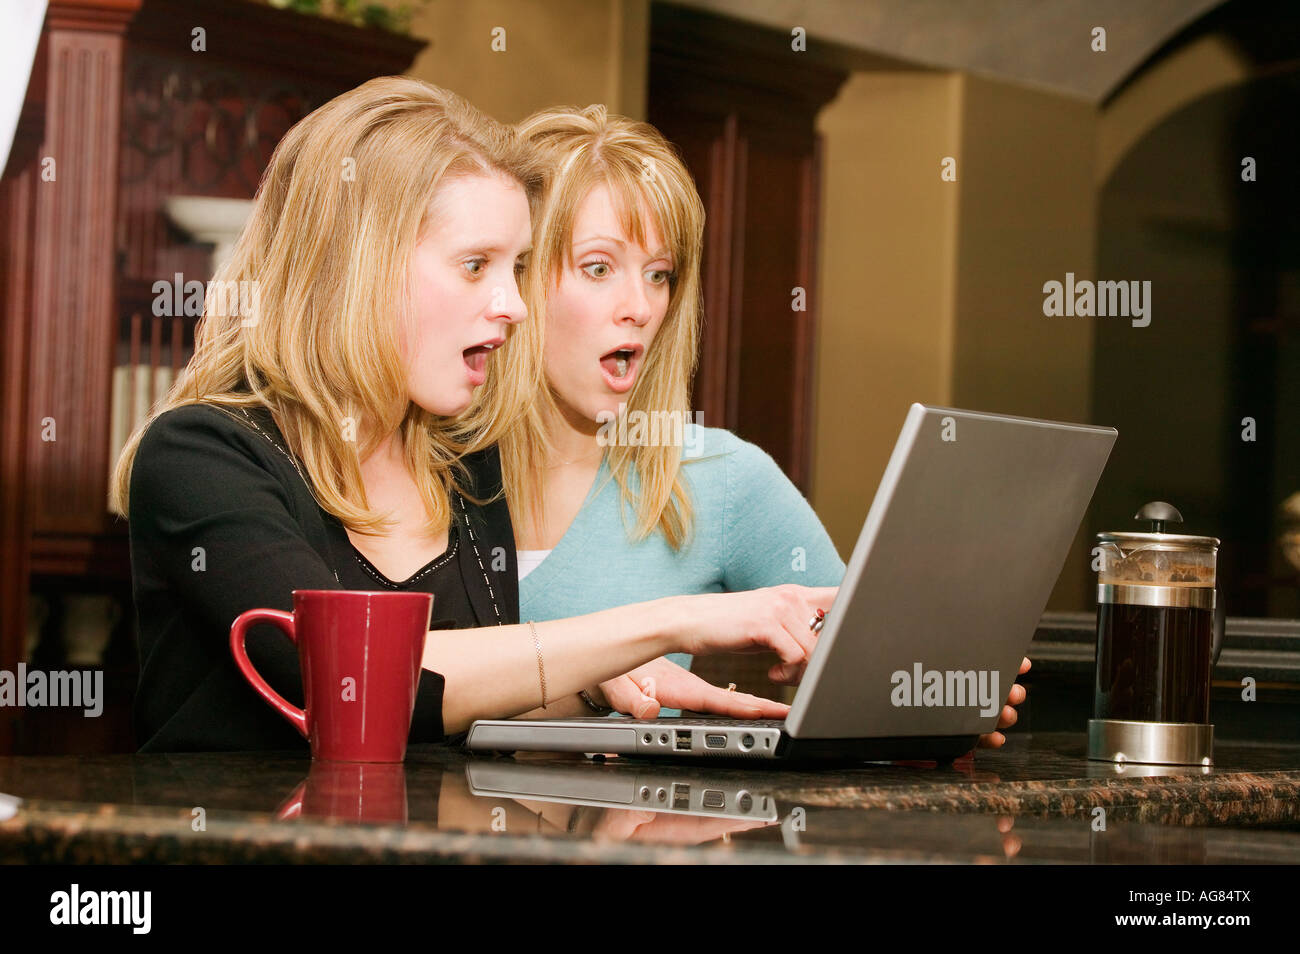 Woman with surprised expressions looking at a laptop - Stock Image